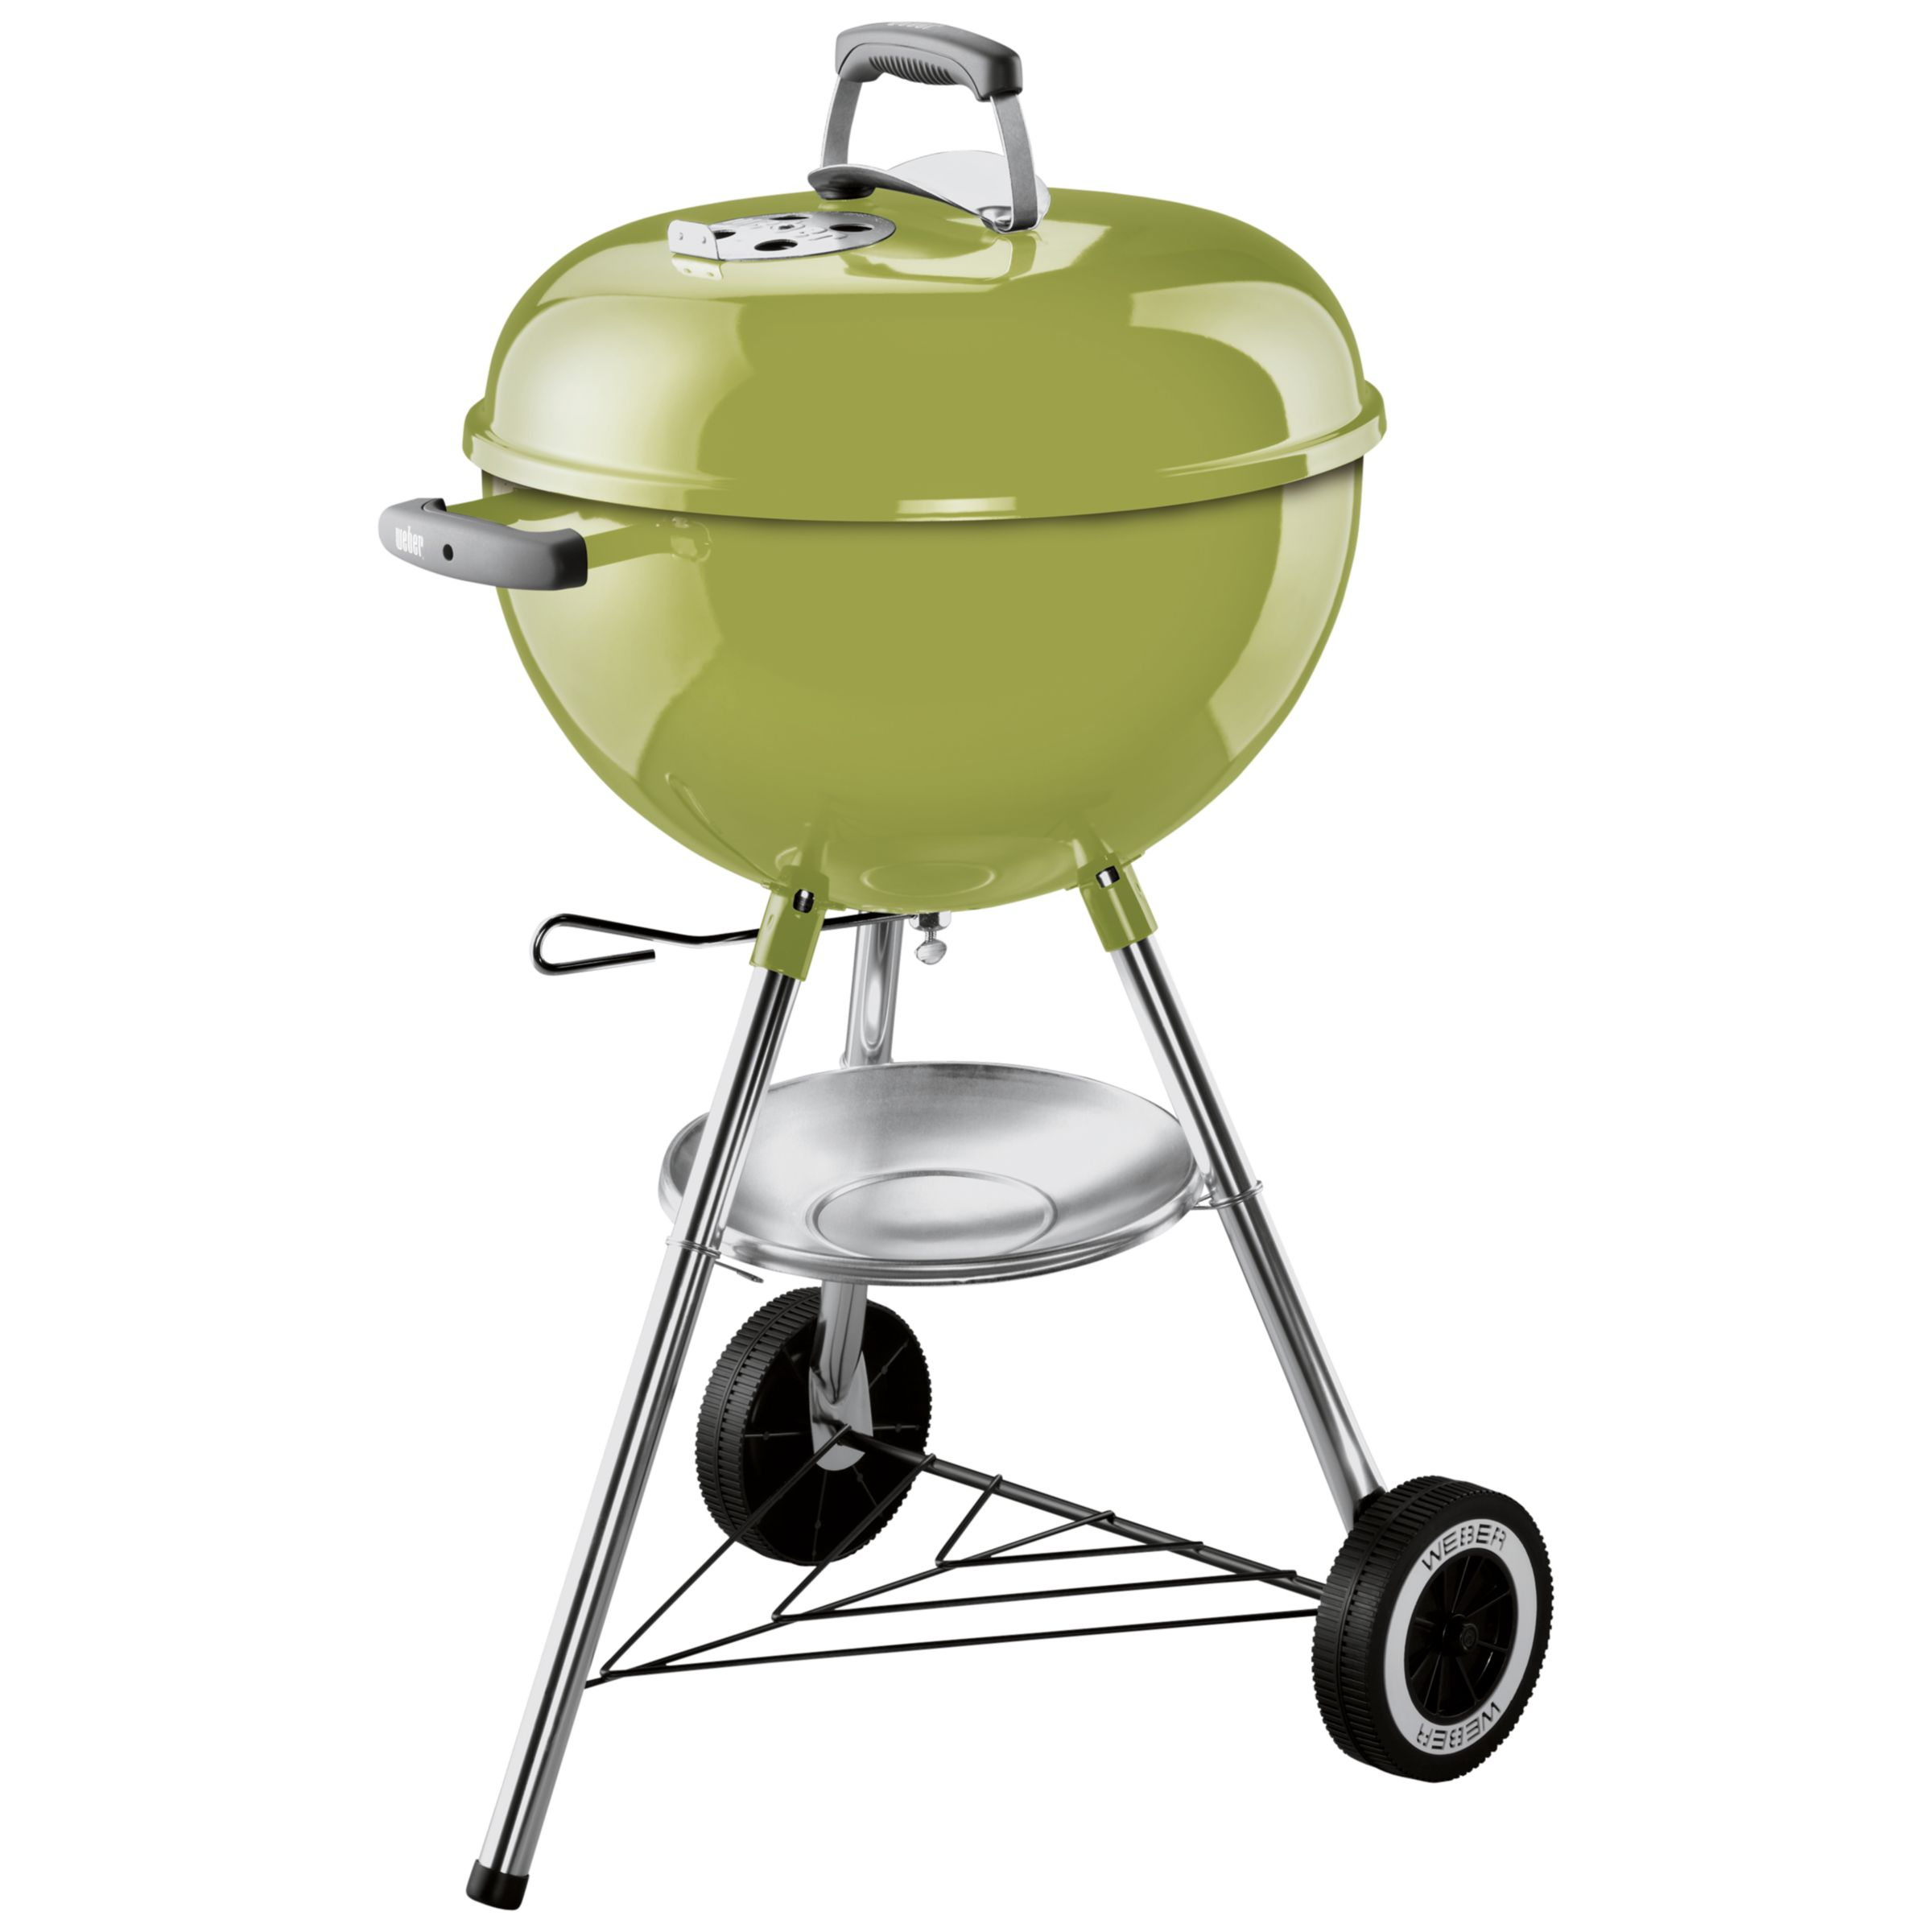 Weber One Touch Original Charcoal Barbecue, 47cm, Spring Green